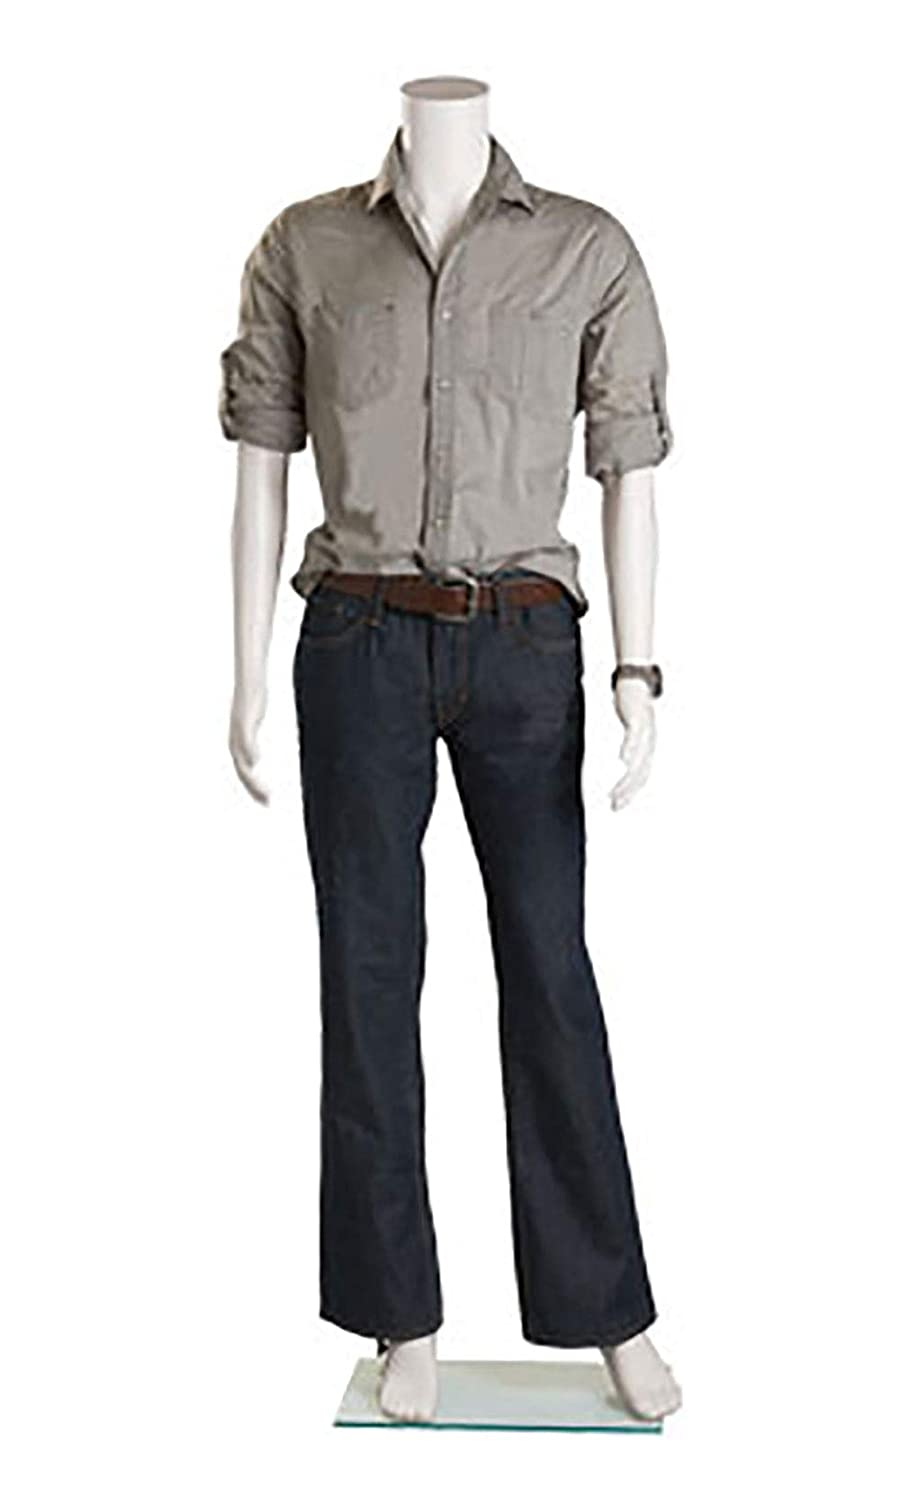 Male Headless White Plastic Mannequin - Height 5'7½